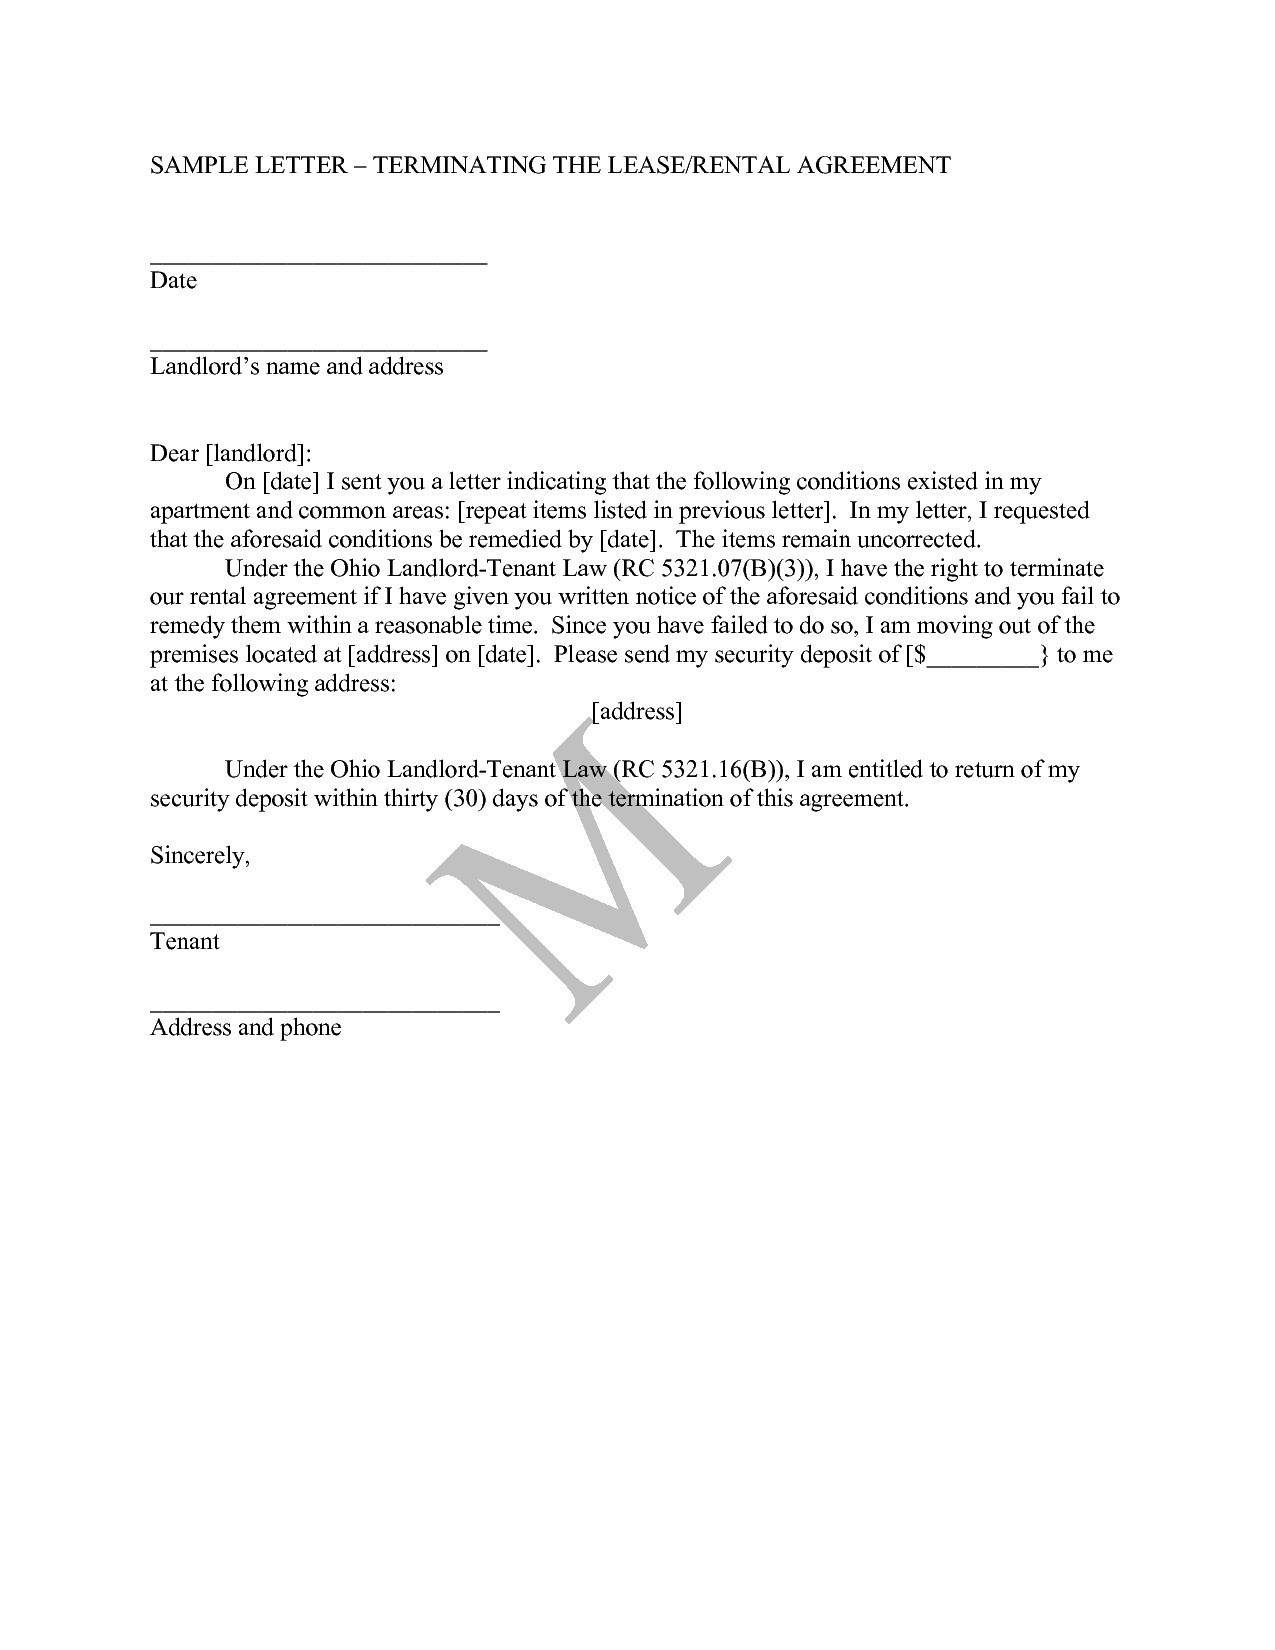 Landlord agreement letter template examples letter templates landlord agreement letter template maxwellsz